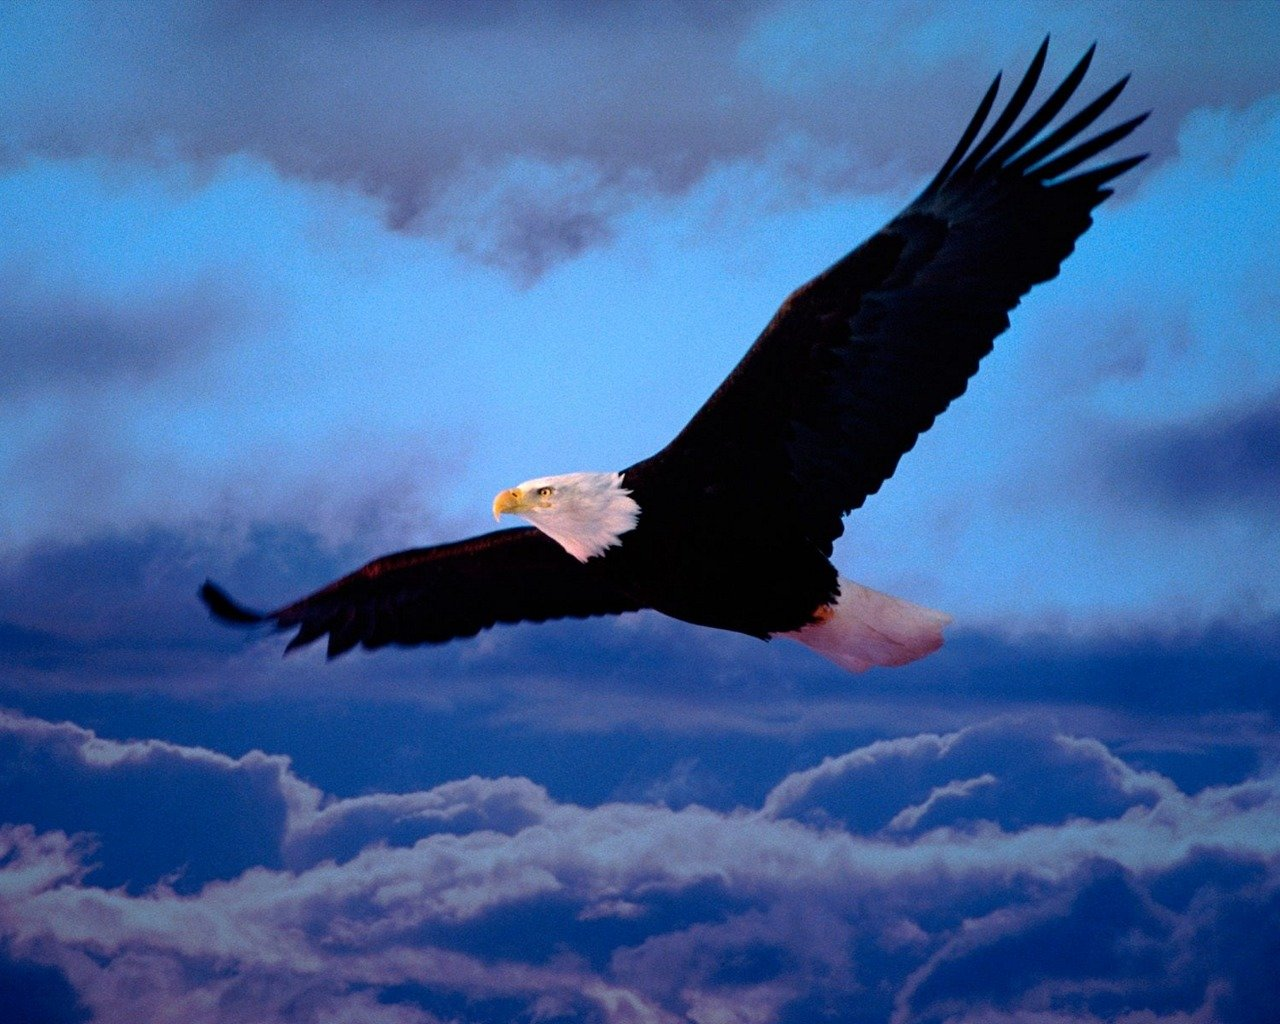 Download hd 1280x1024 American Bald Eagle desktop background ID:68701 for free